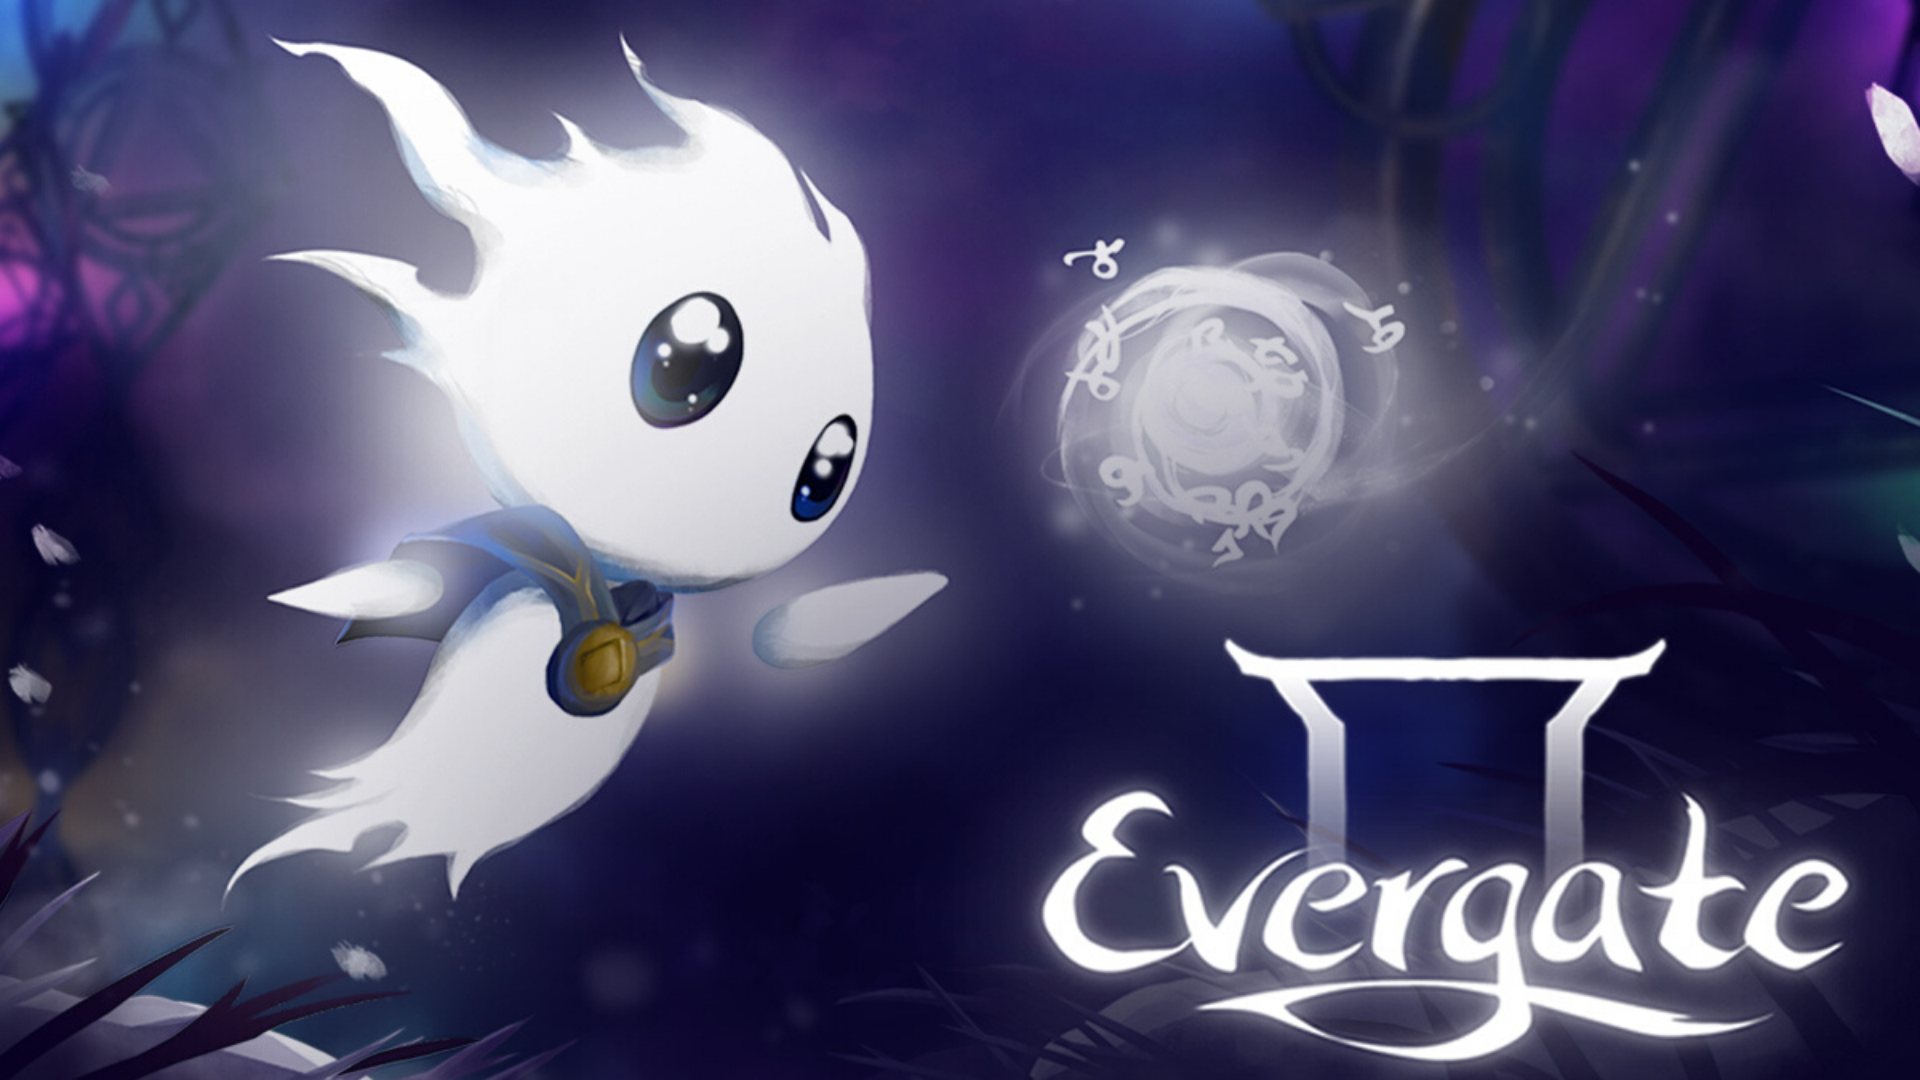 You can now Wishlist Evergate on Steam Here!